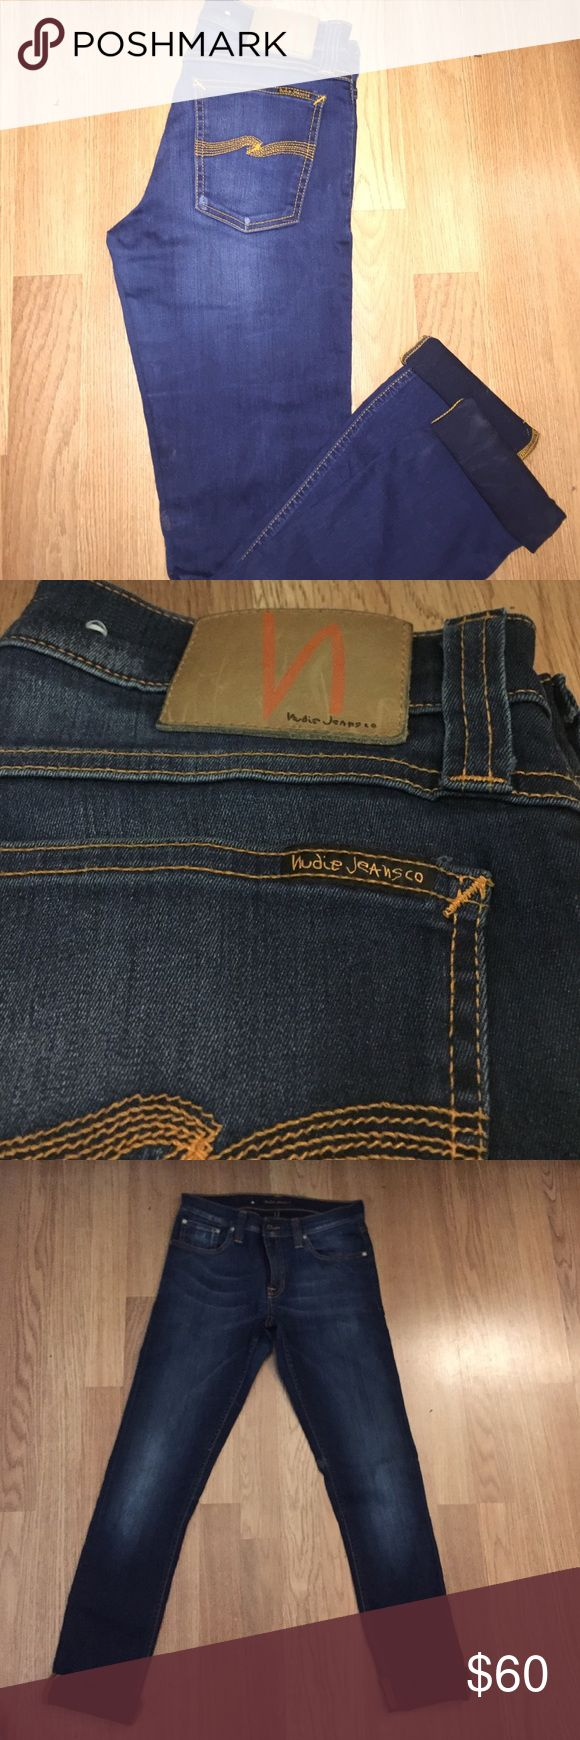 Nudie Jeans Wore these jeans a few times. 32 inches in length. Selling them because I'm no longer a size 28. 😇 Nudie Jeans Jeans Straight Leg